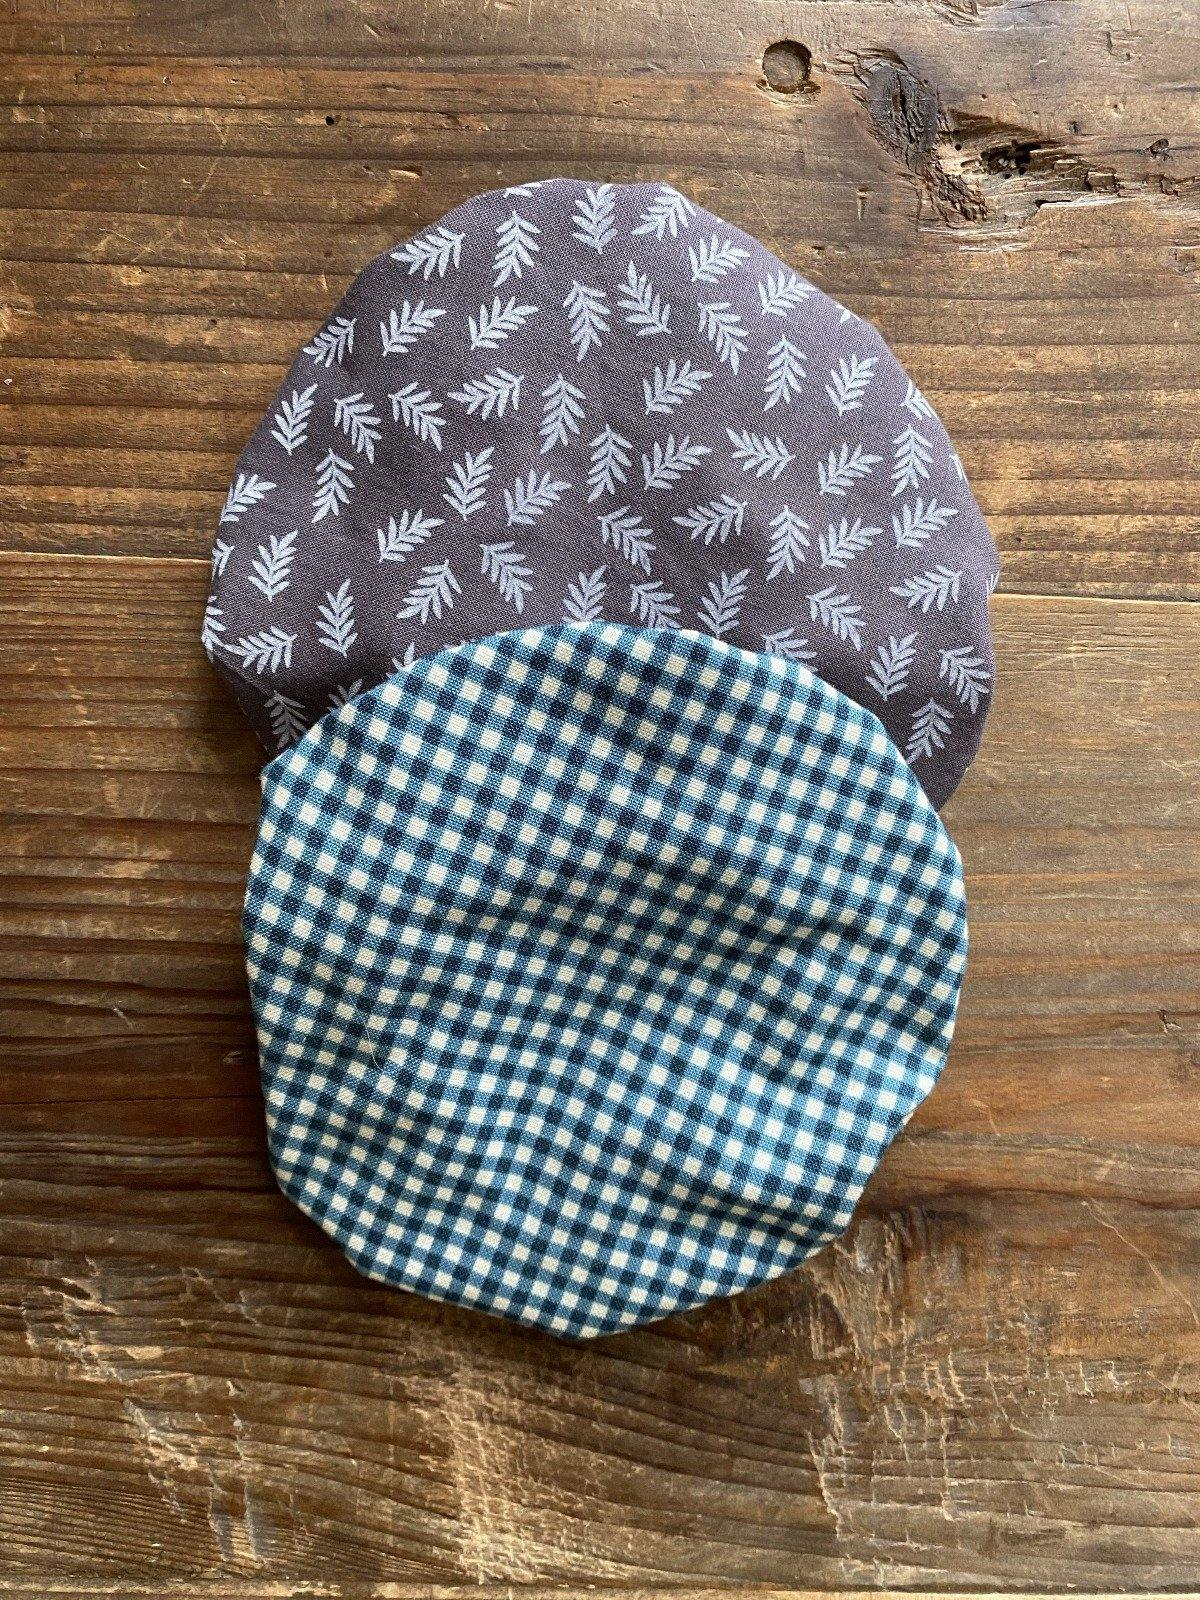 Zero waste fabric bowl covers